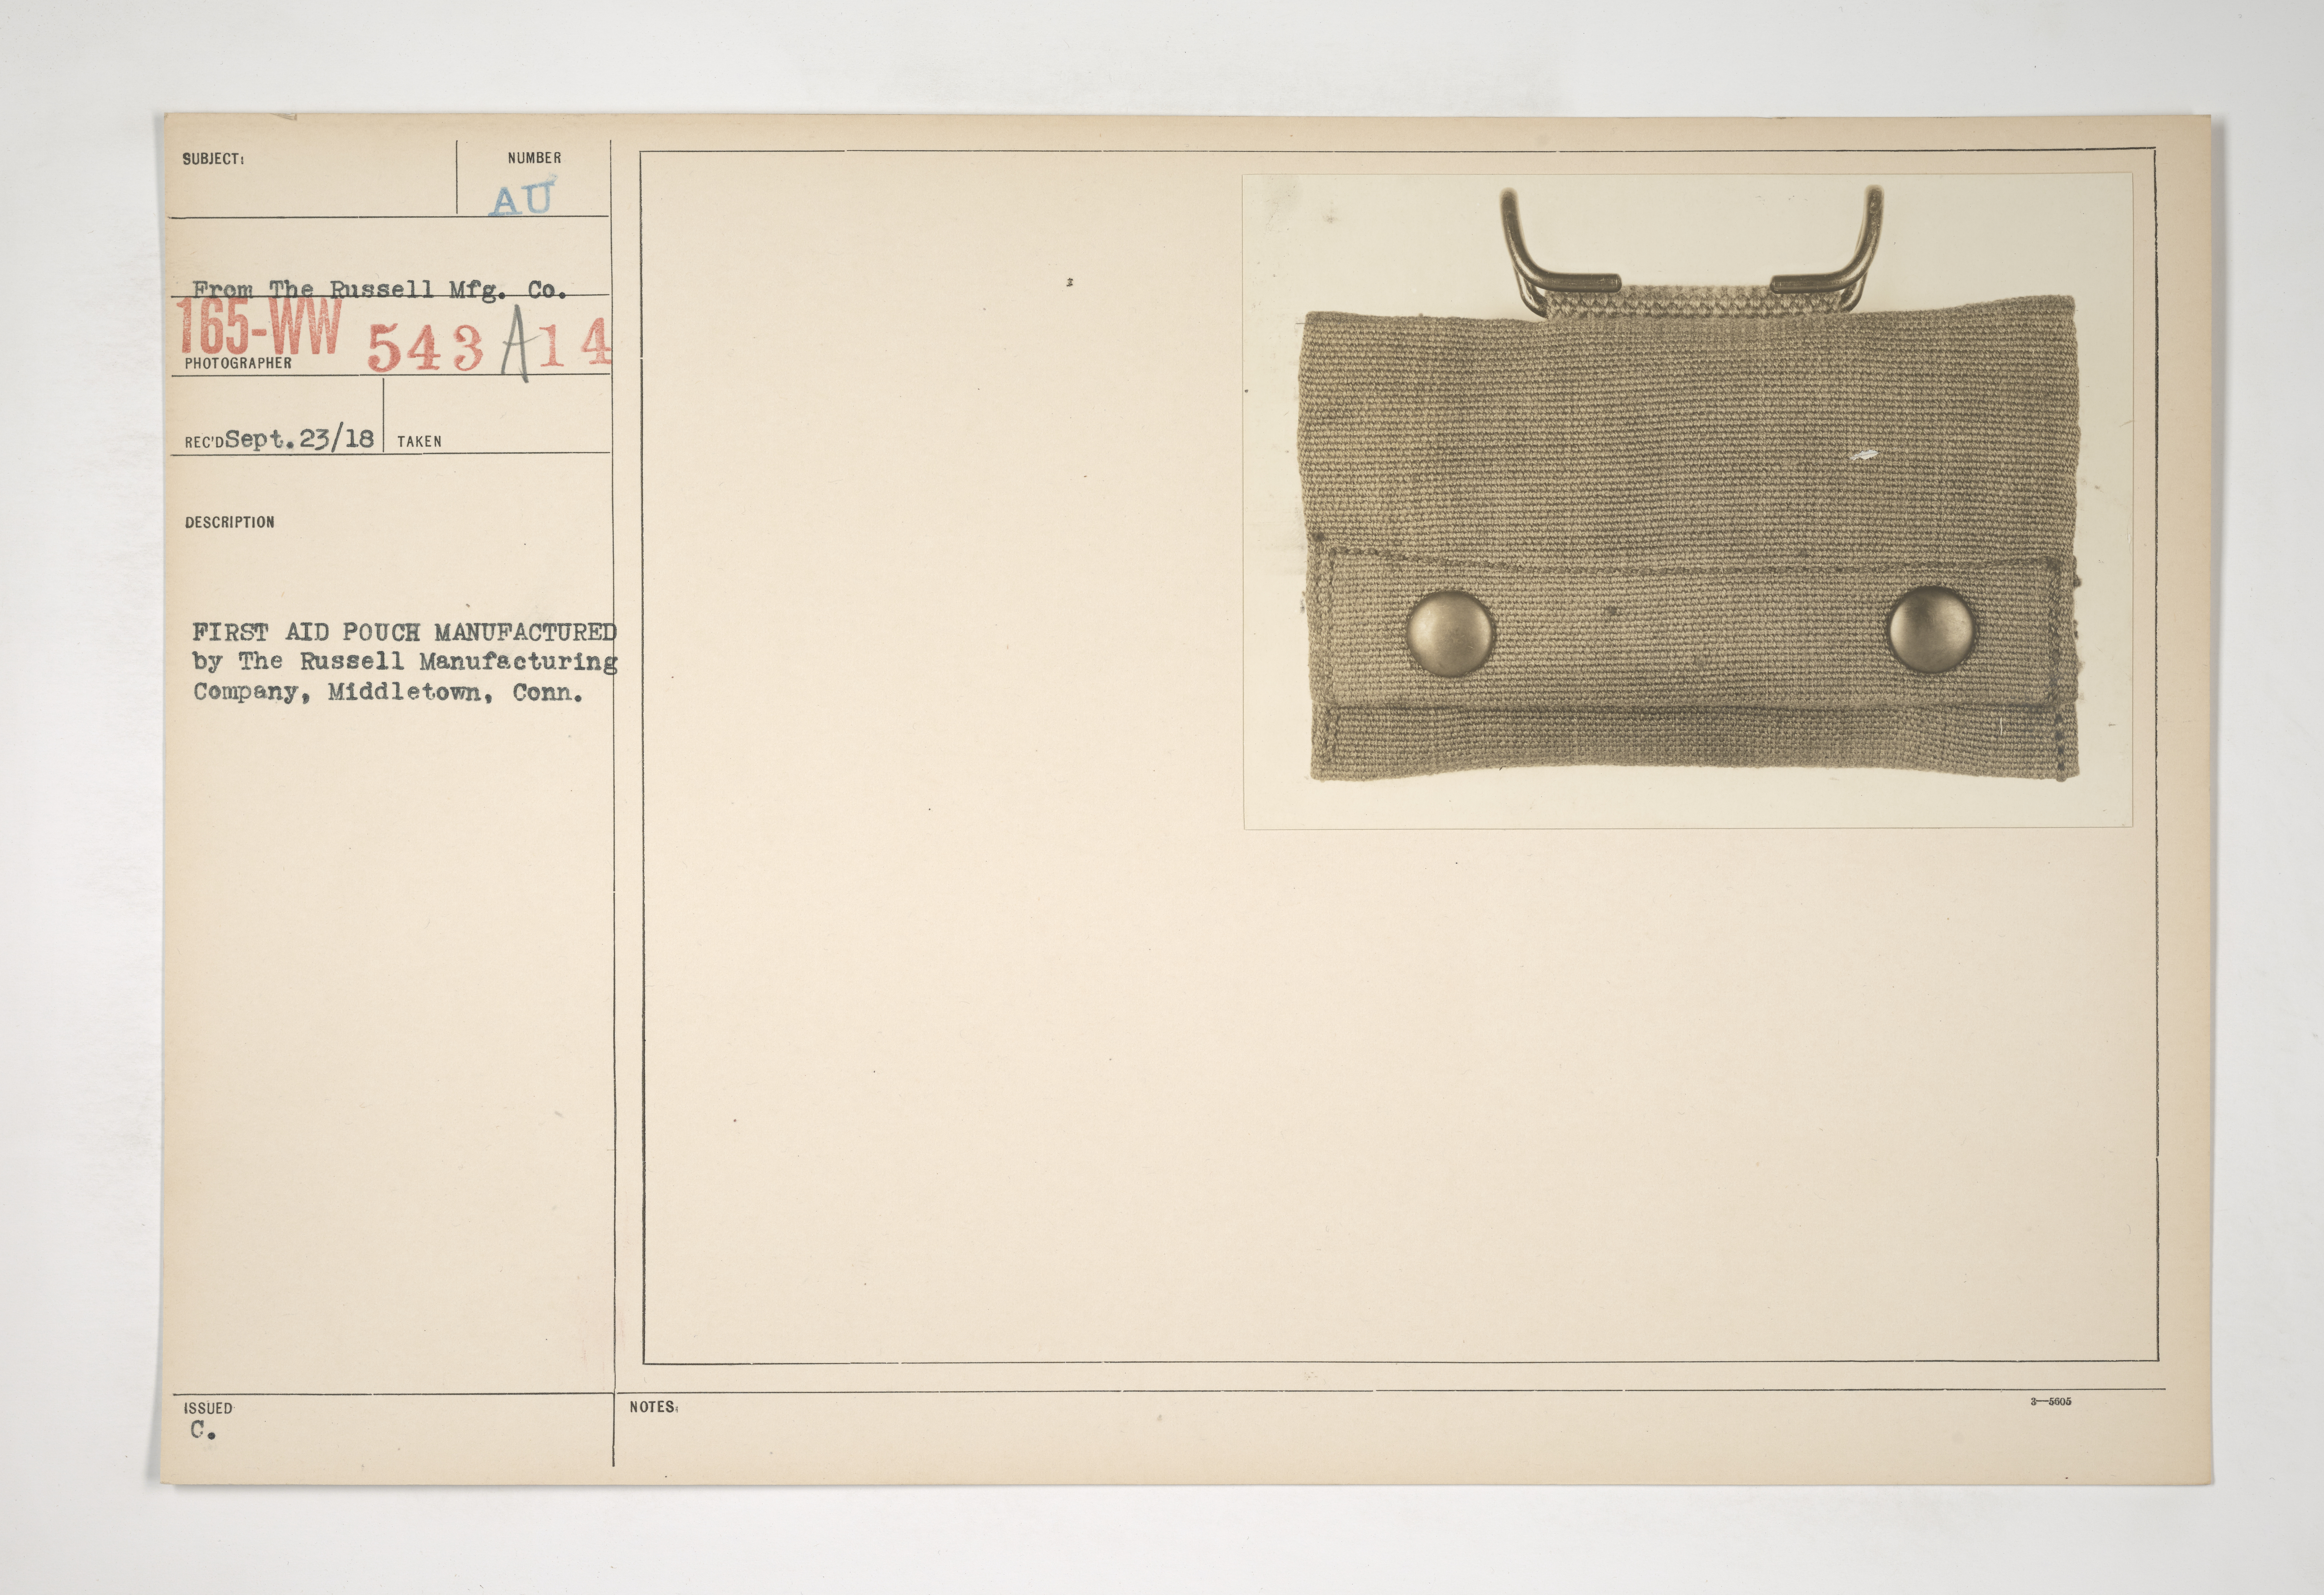 Uniforms and Equipment - Pouches and Scabbards [165-WW-543A-14]